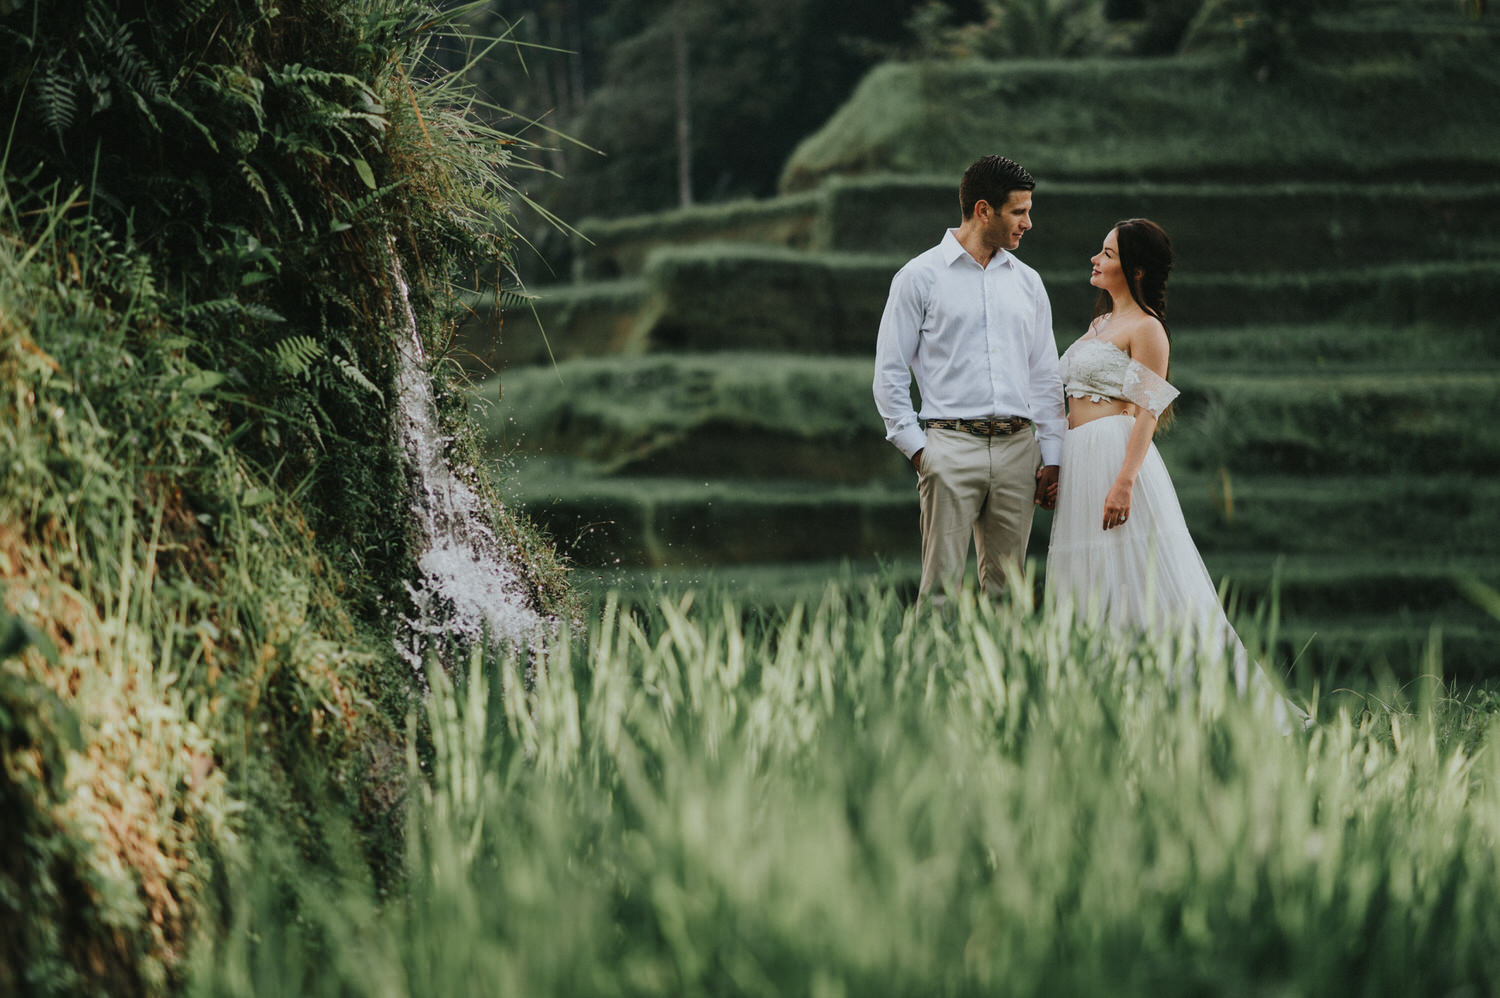 bali wedding - elopement - ubud wedding - diktatphotography - olga + Jason - 18